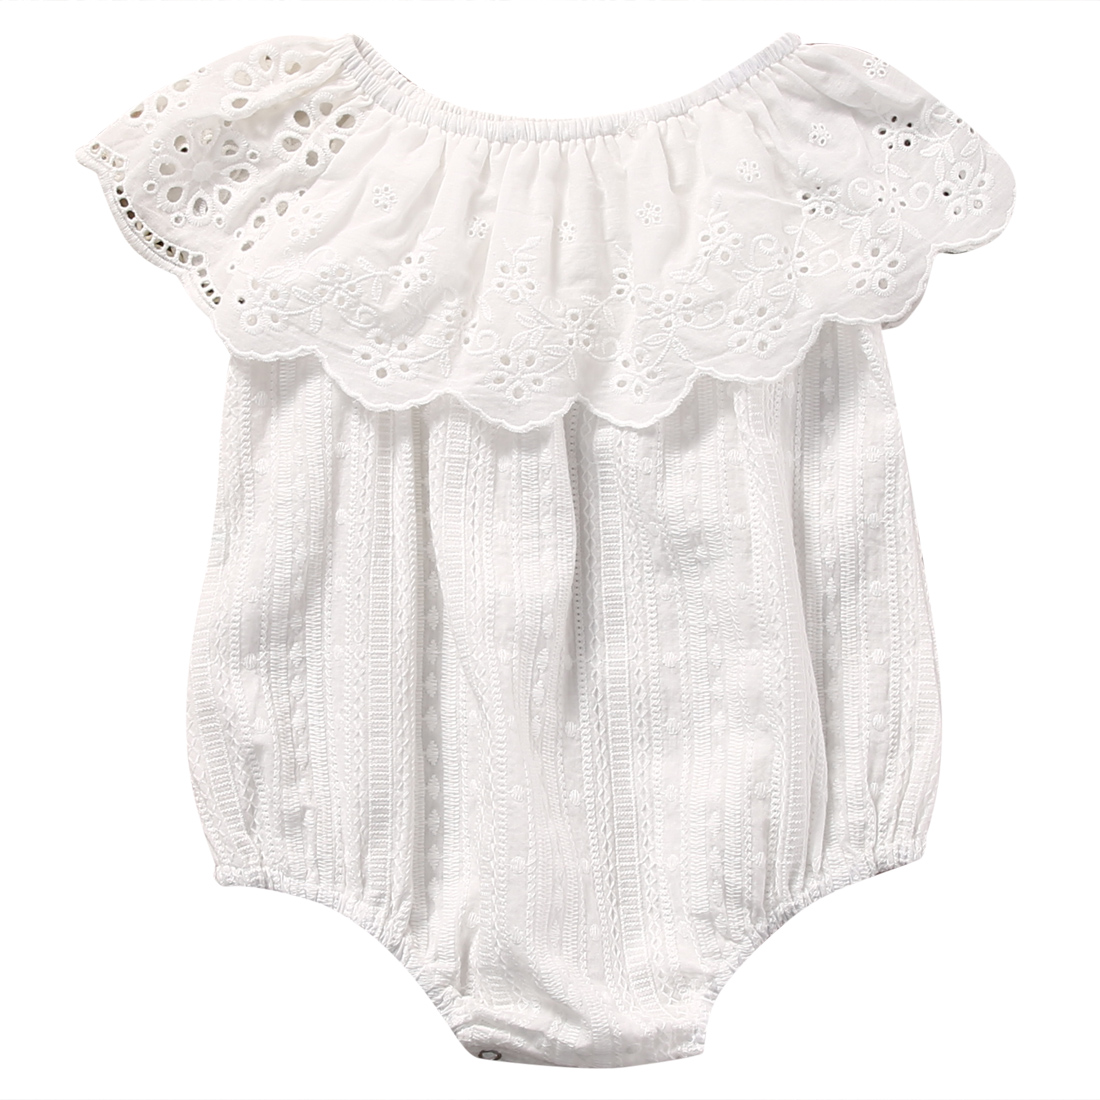 2017 Summer Newborn Baby Girl White Lace Romper Jumpsuit Floral Infant Clothes Outfit Sunsuit 2017 summer newborn baby girl white lace romper jumpsuit floral infant clothes outfit sunsuit